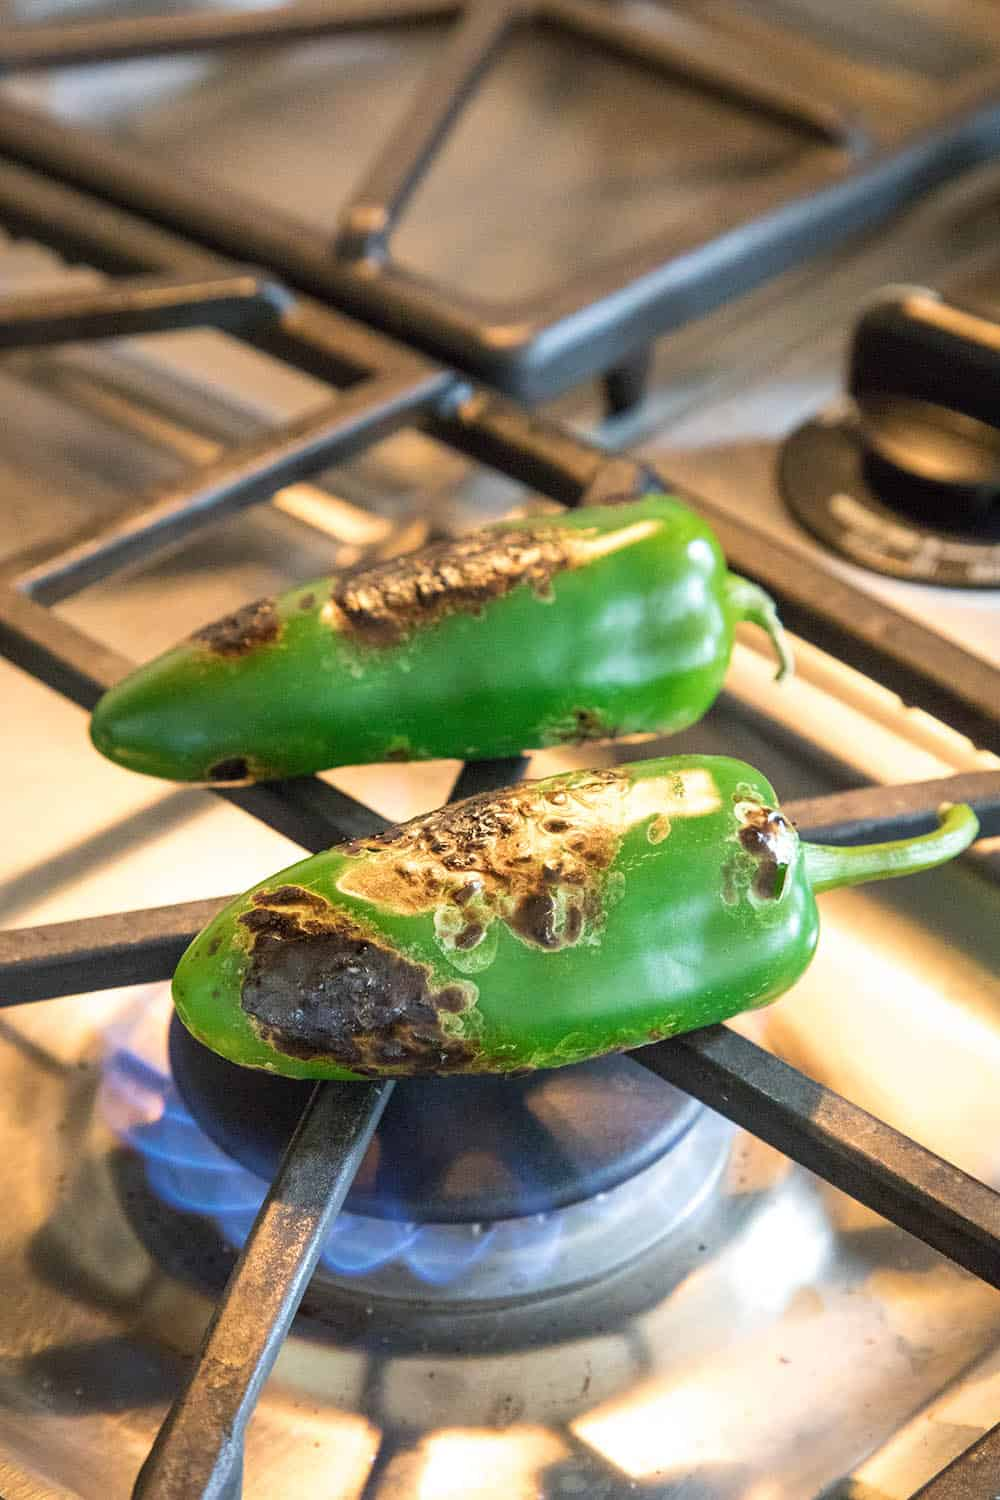 Roasting jalapeno peppers over an open flame